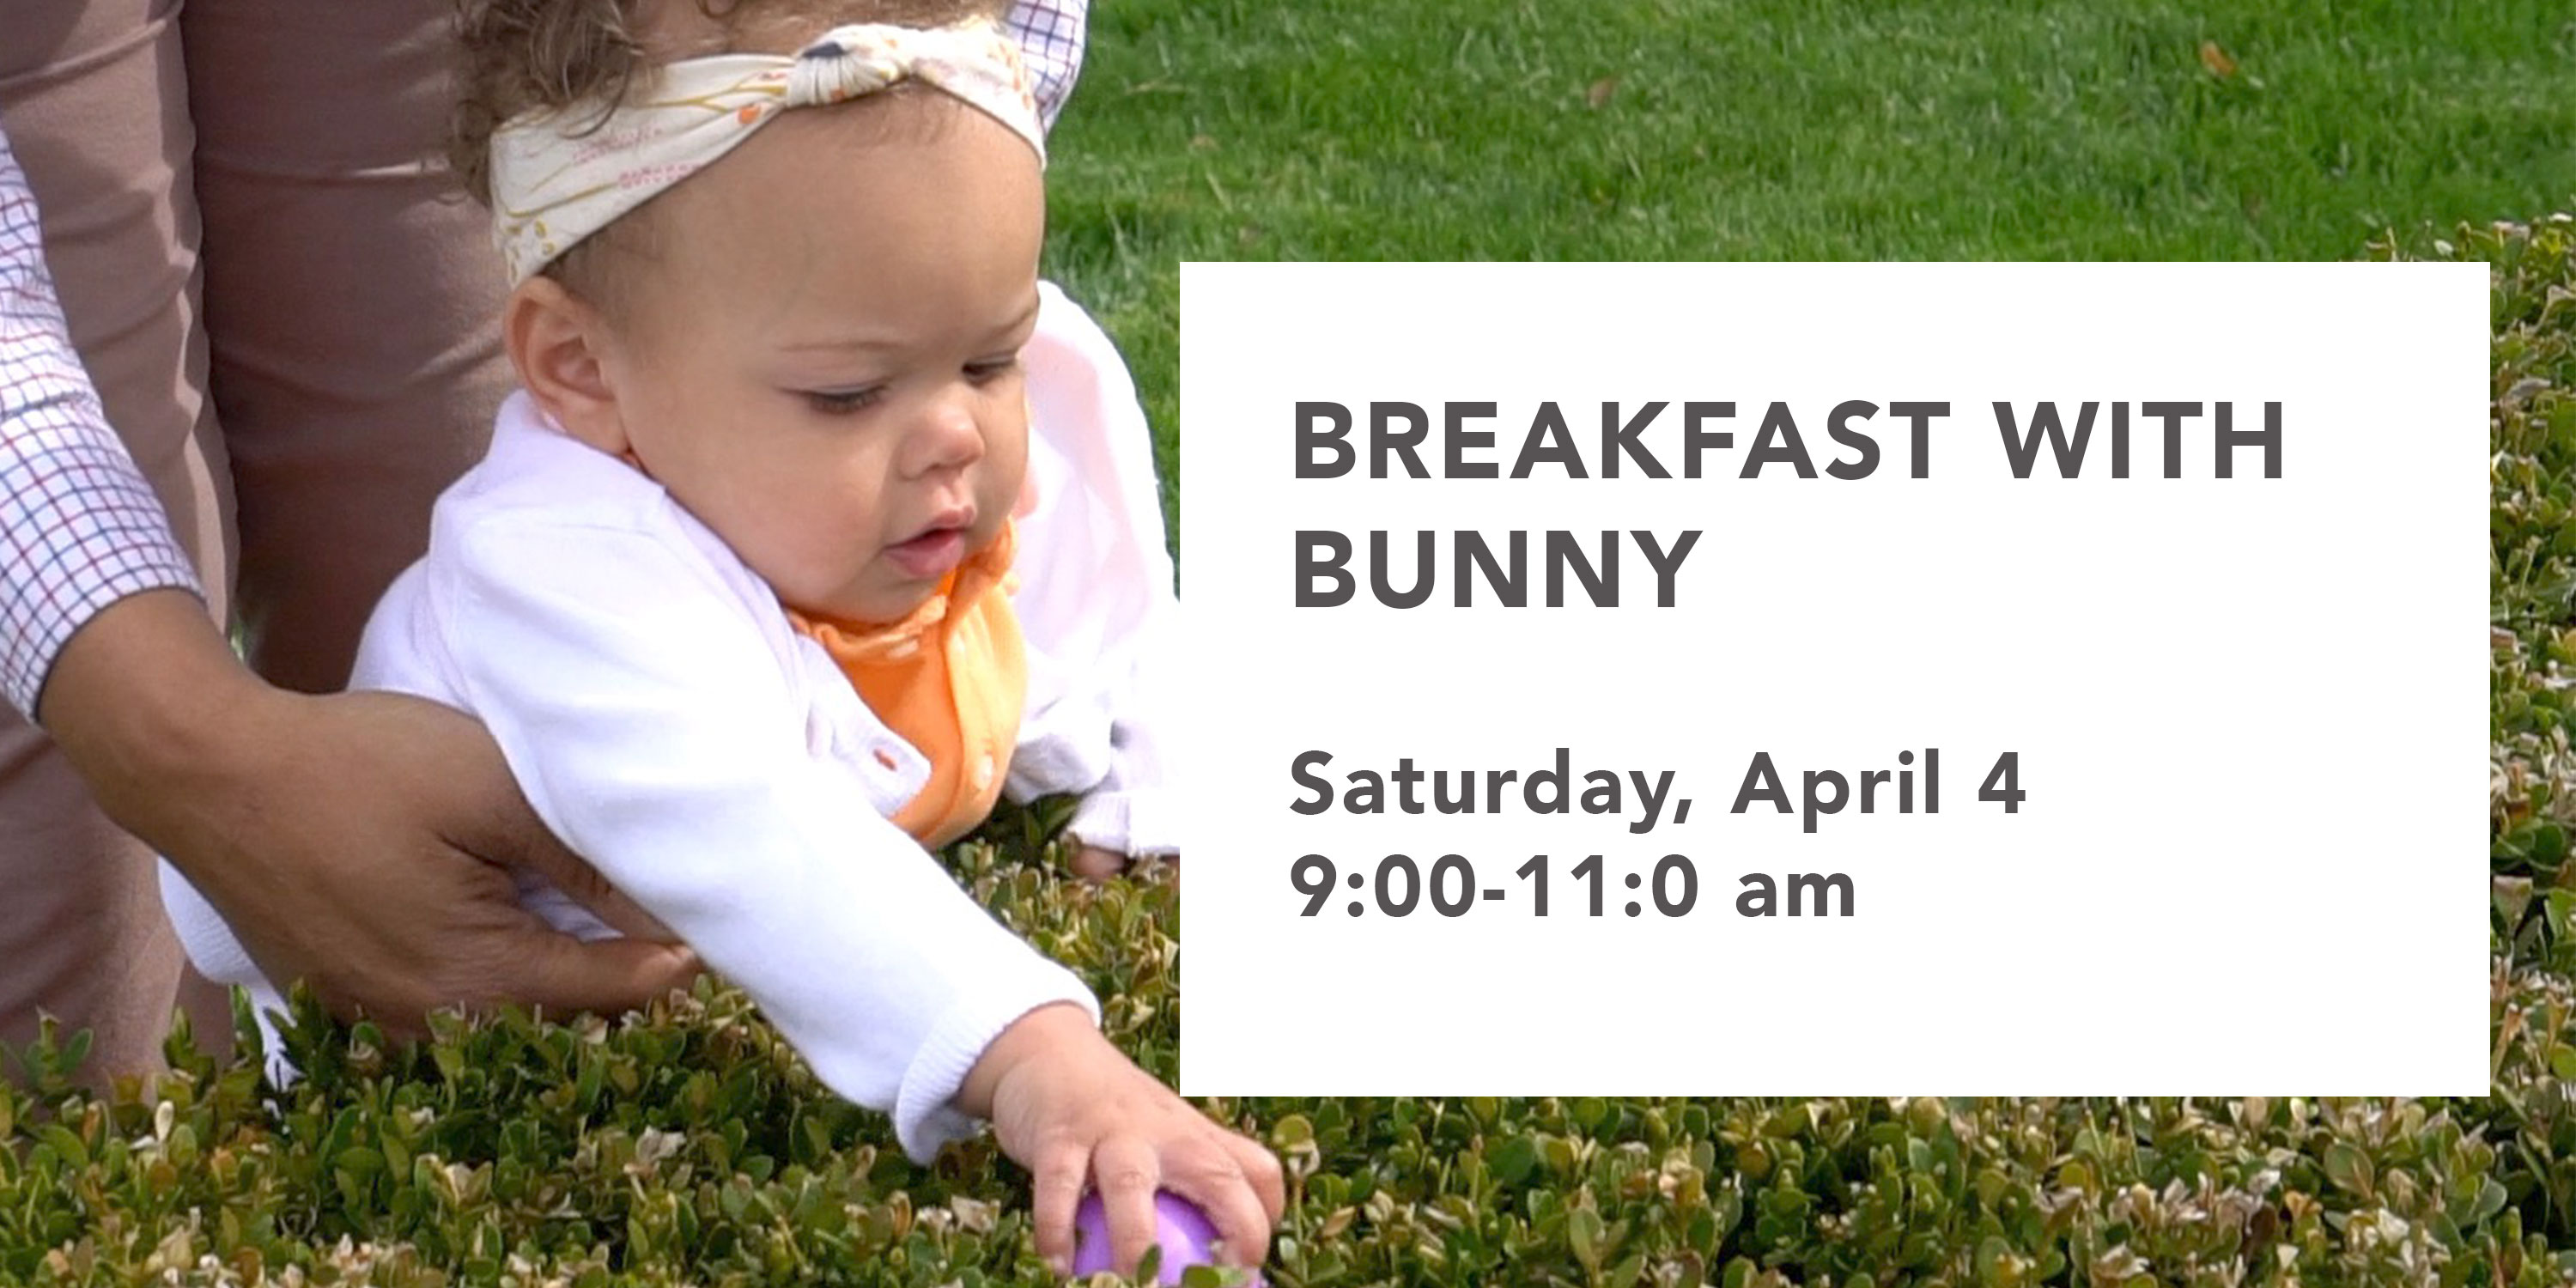 Breakfast-with-Bunny-Graphic